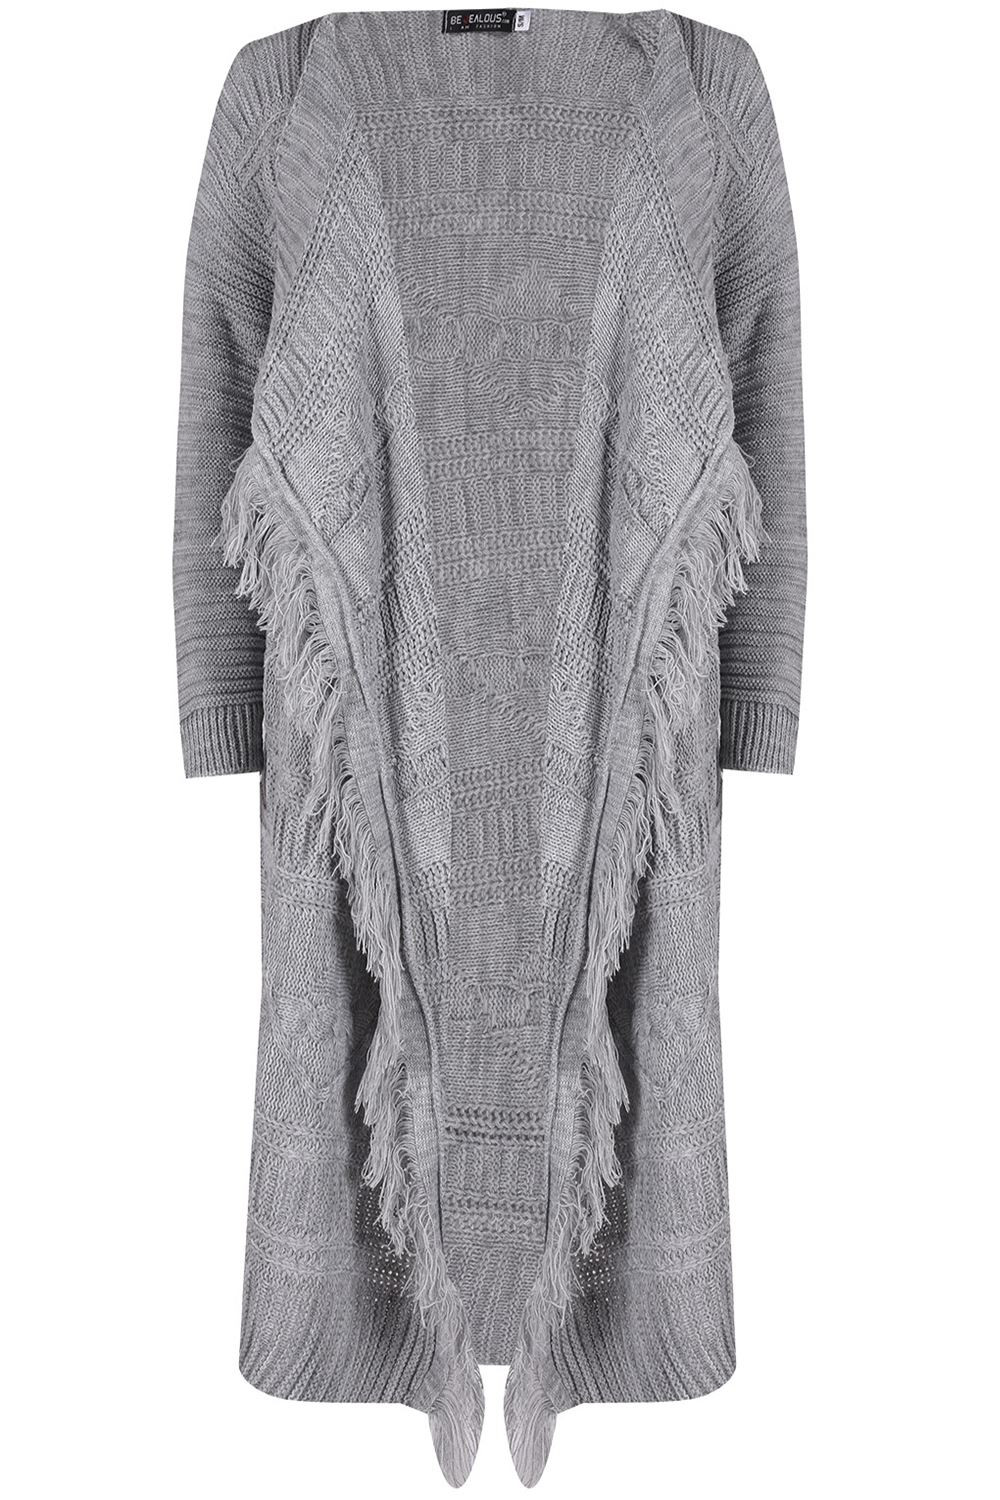 Unique Womens Cardigan La S Chunky Cable Knit Tassel Long Ladies Cable Knit Sweater Of Charming 49 Photos Ladies Cable Knit Sweater